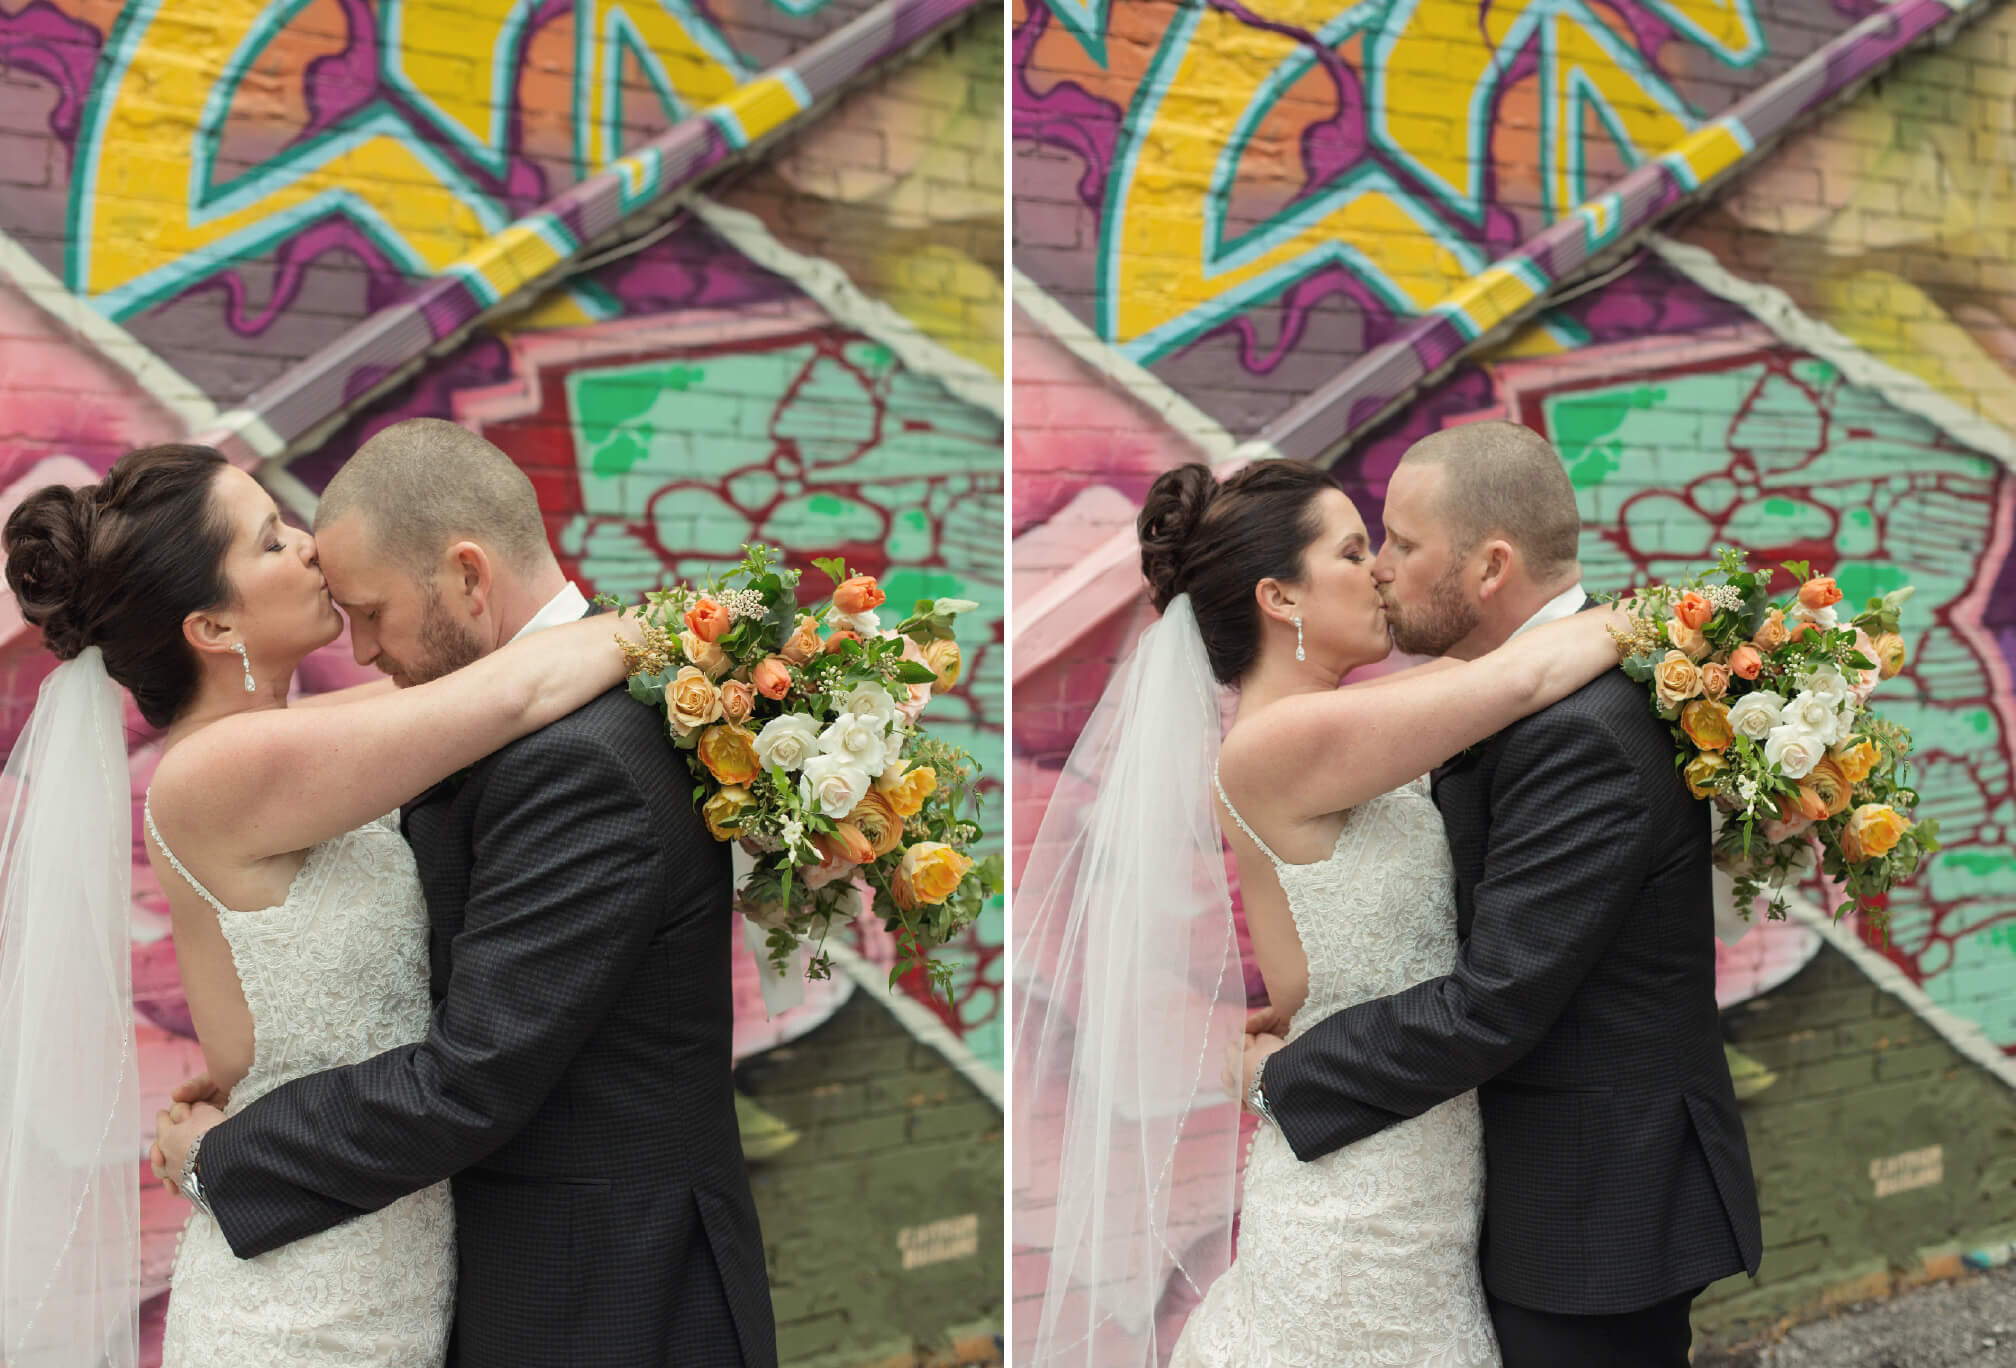 grafitti alley wedding kiss